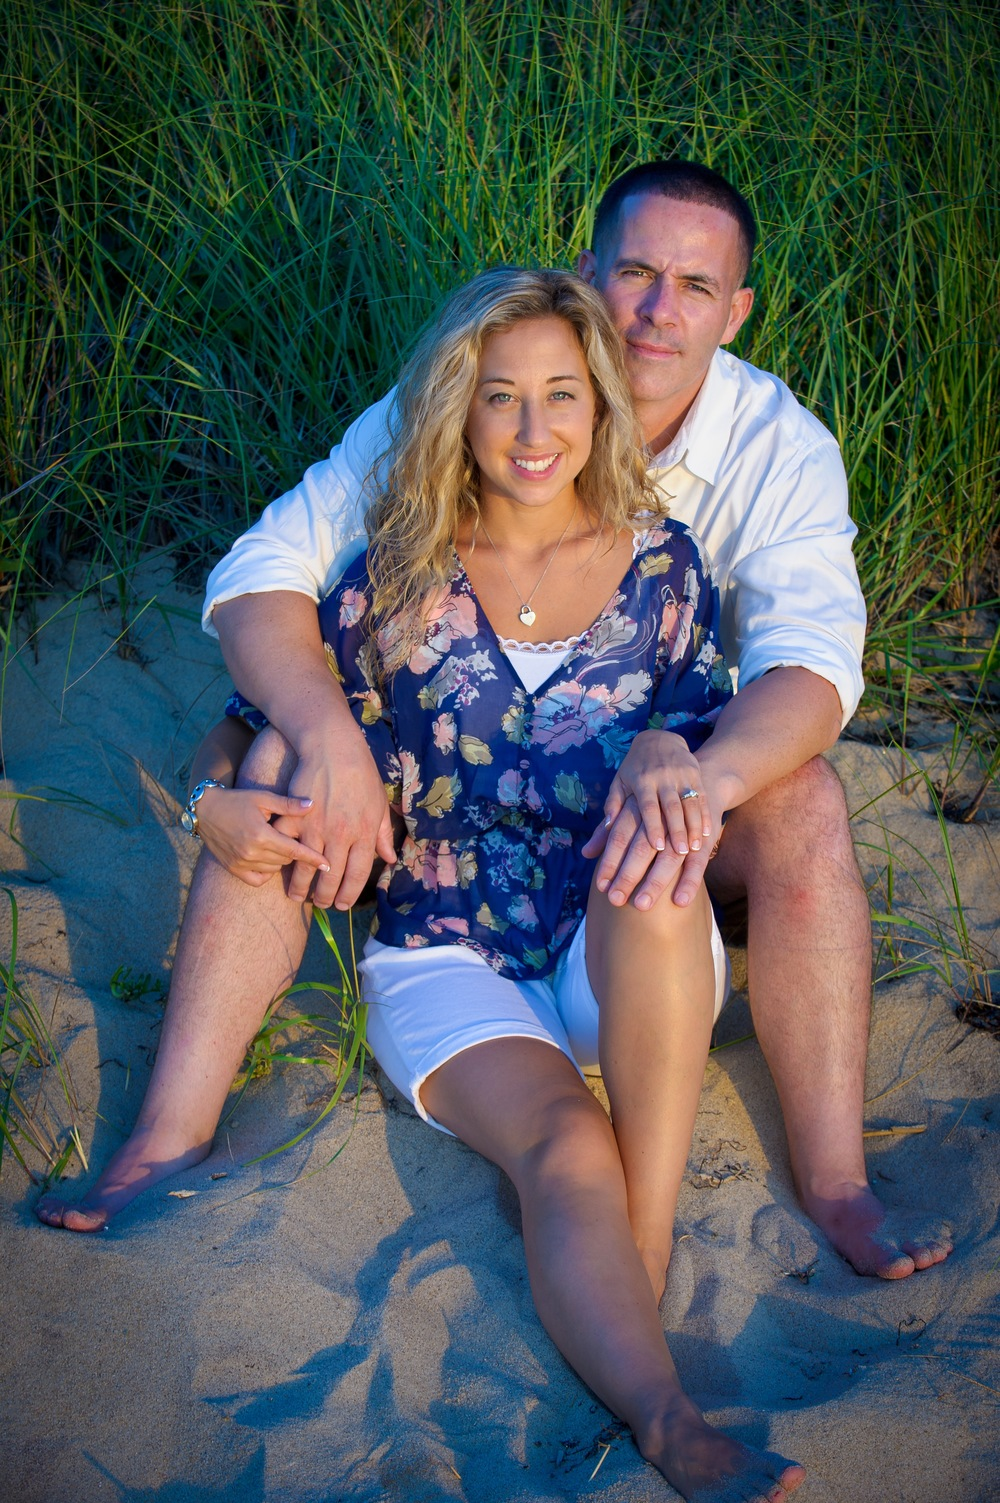 Engagement Photos on Long Island, New York